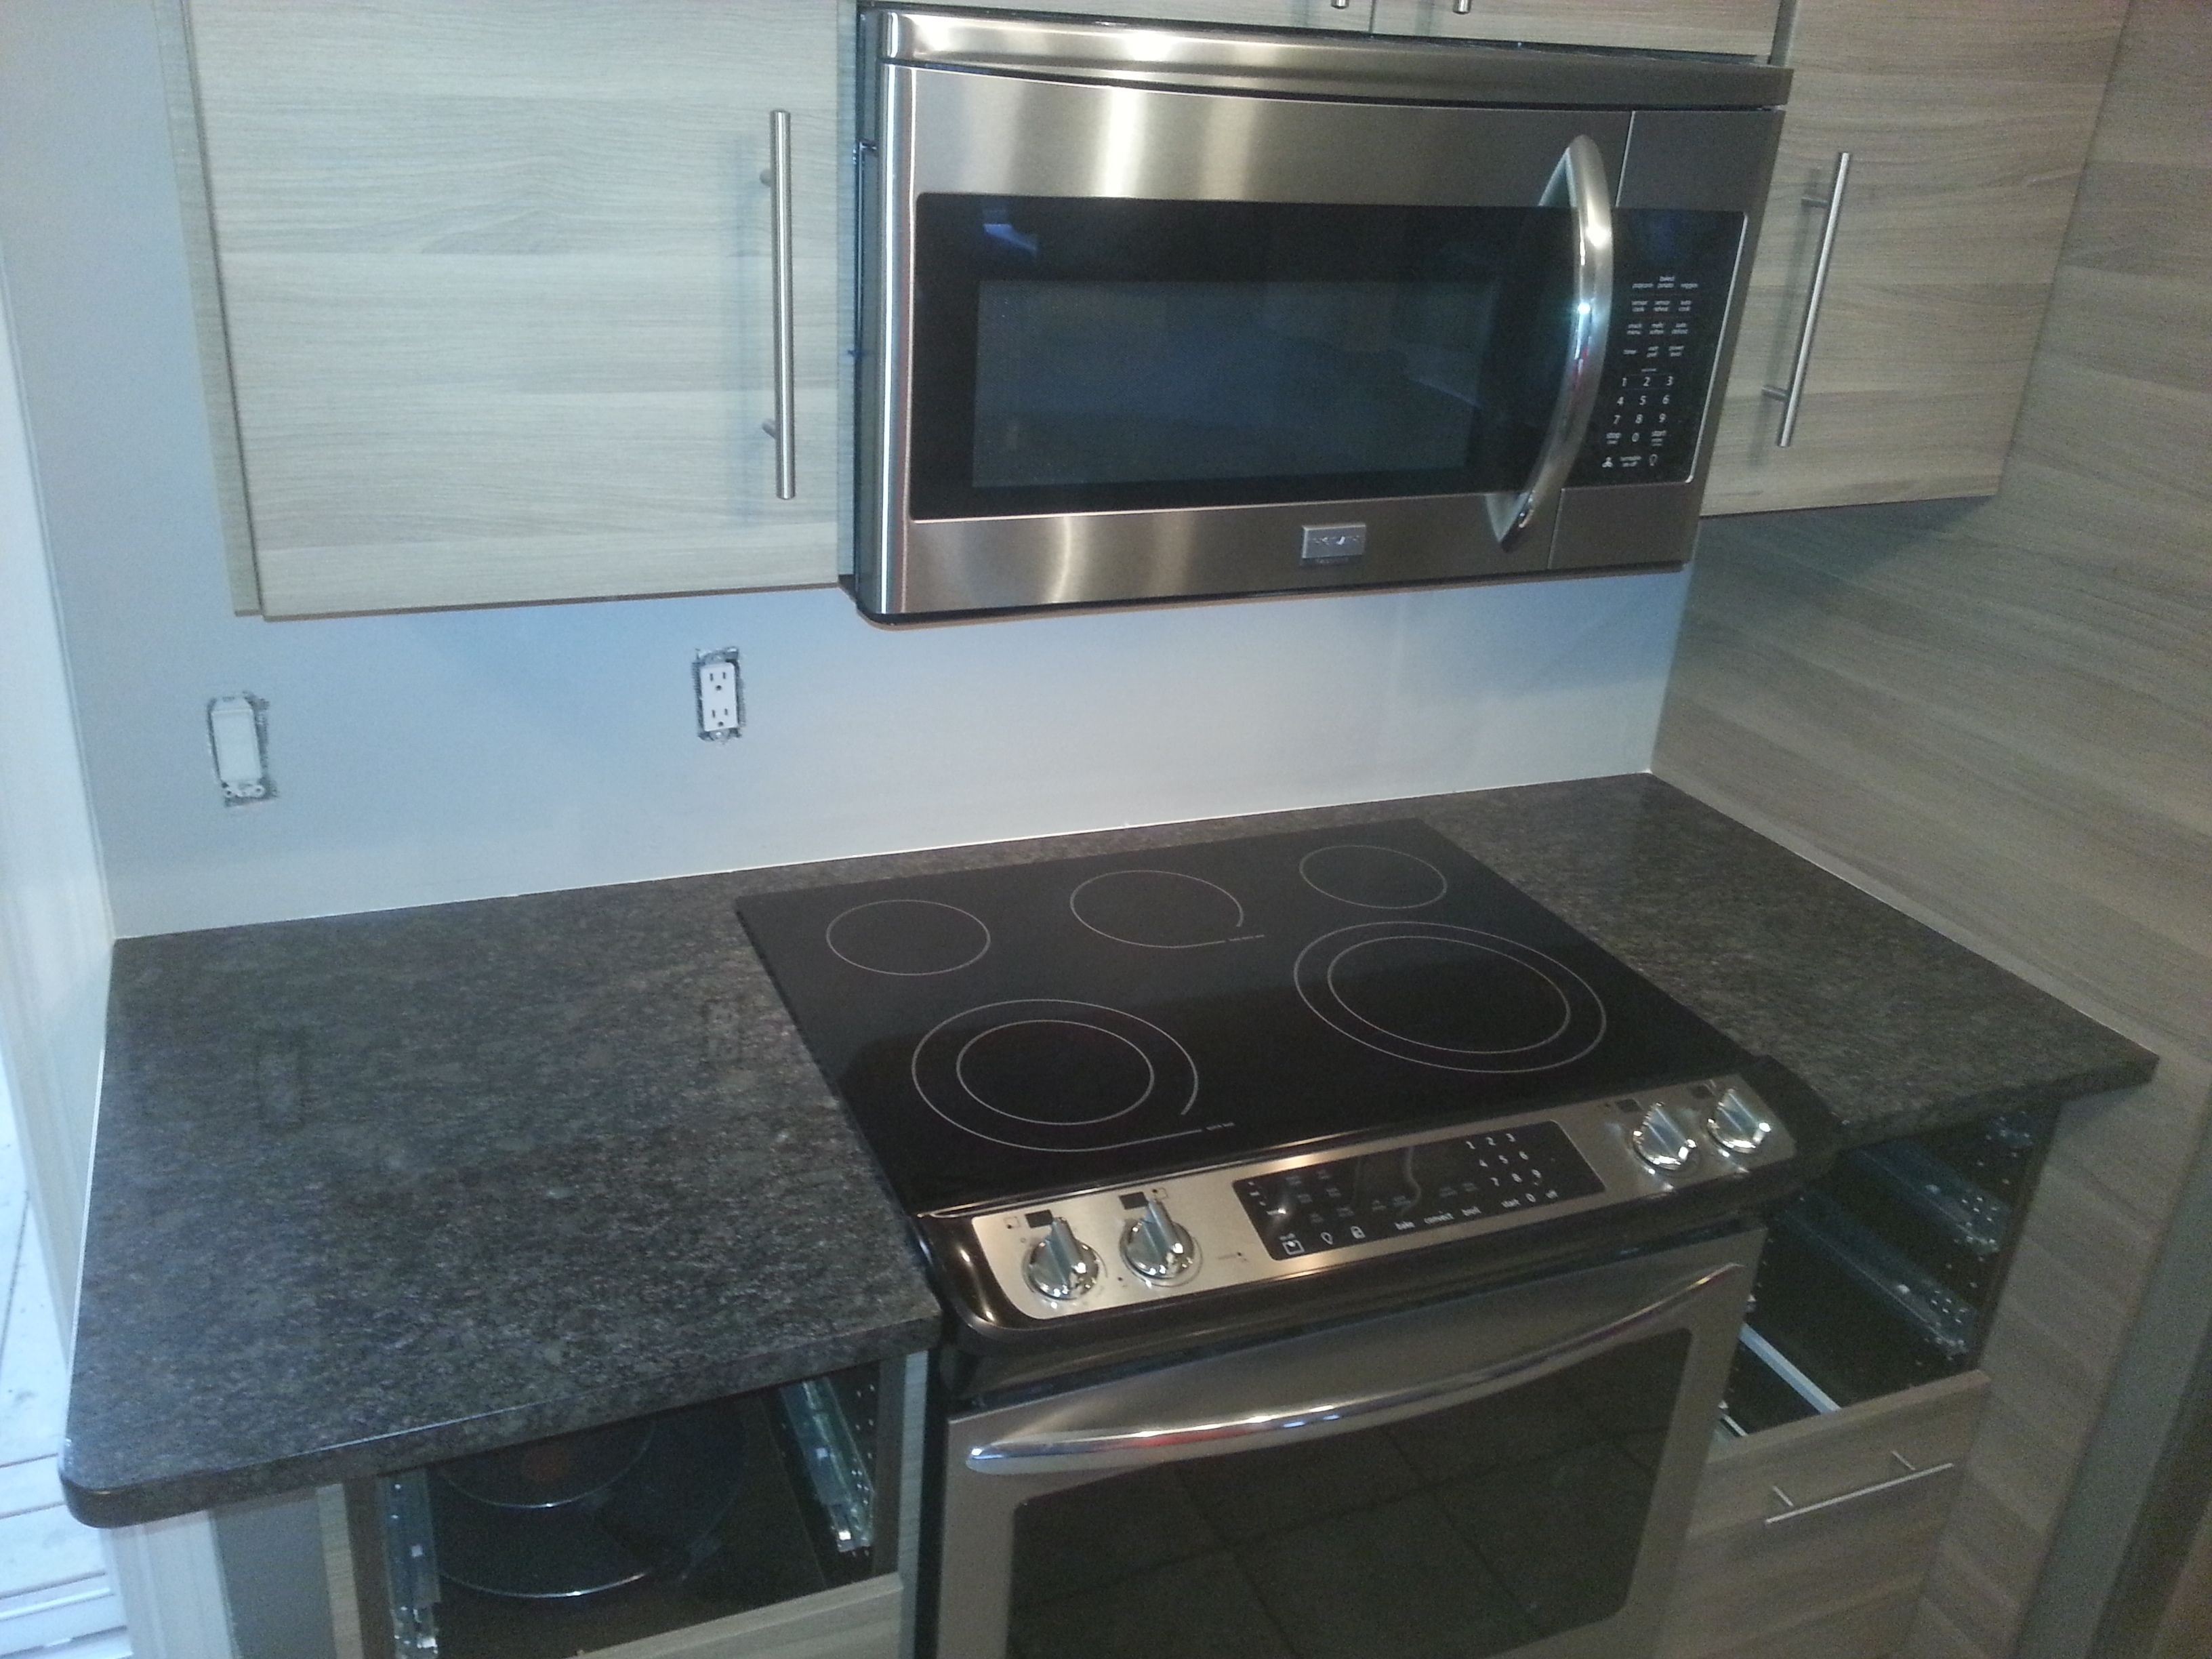 Attirant Steel Grey Granite Countertops, Including Stove Bridge, Wrapped Around A  Slide In Range.